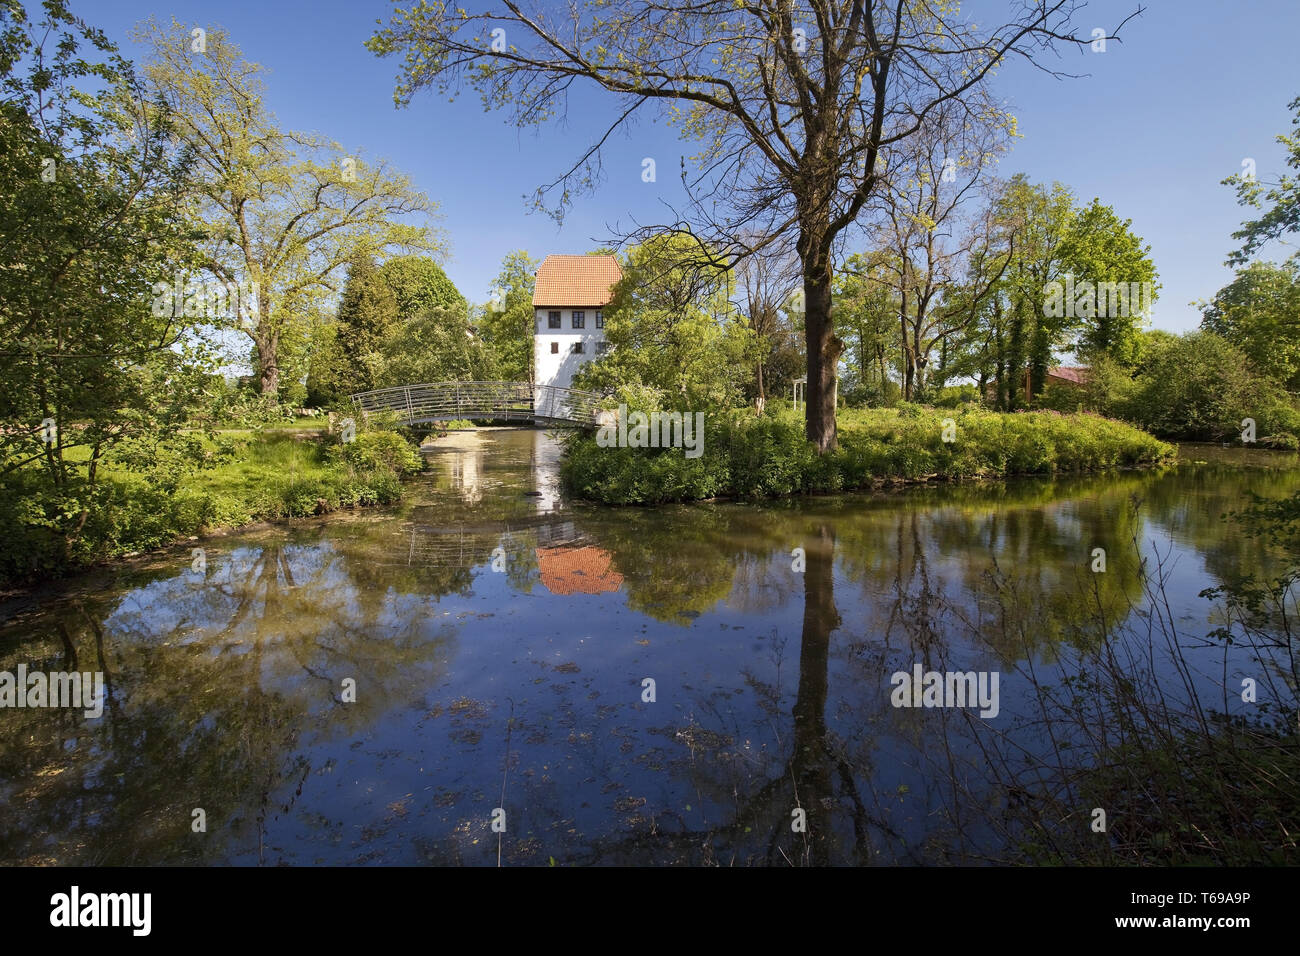 court Bispinghof with ditch and granary, Nordwalde, Muensterland, North Rhine-Westphalia, Germany - Stock Image